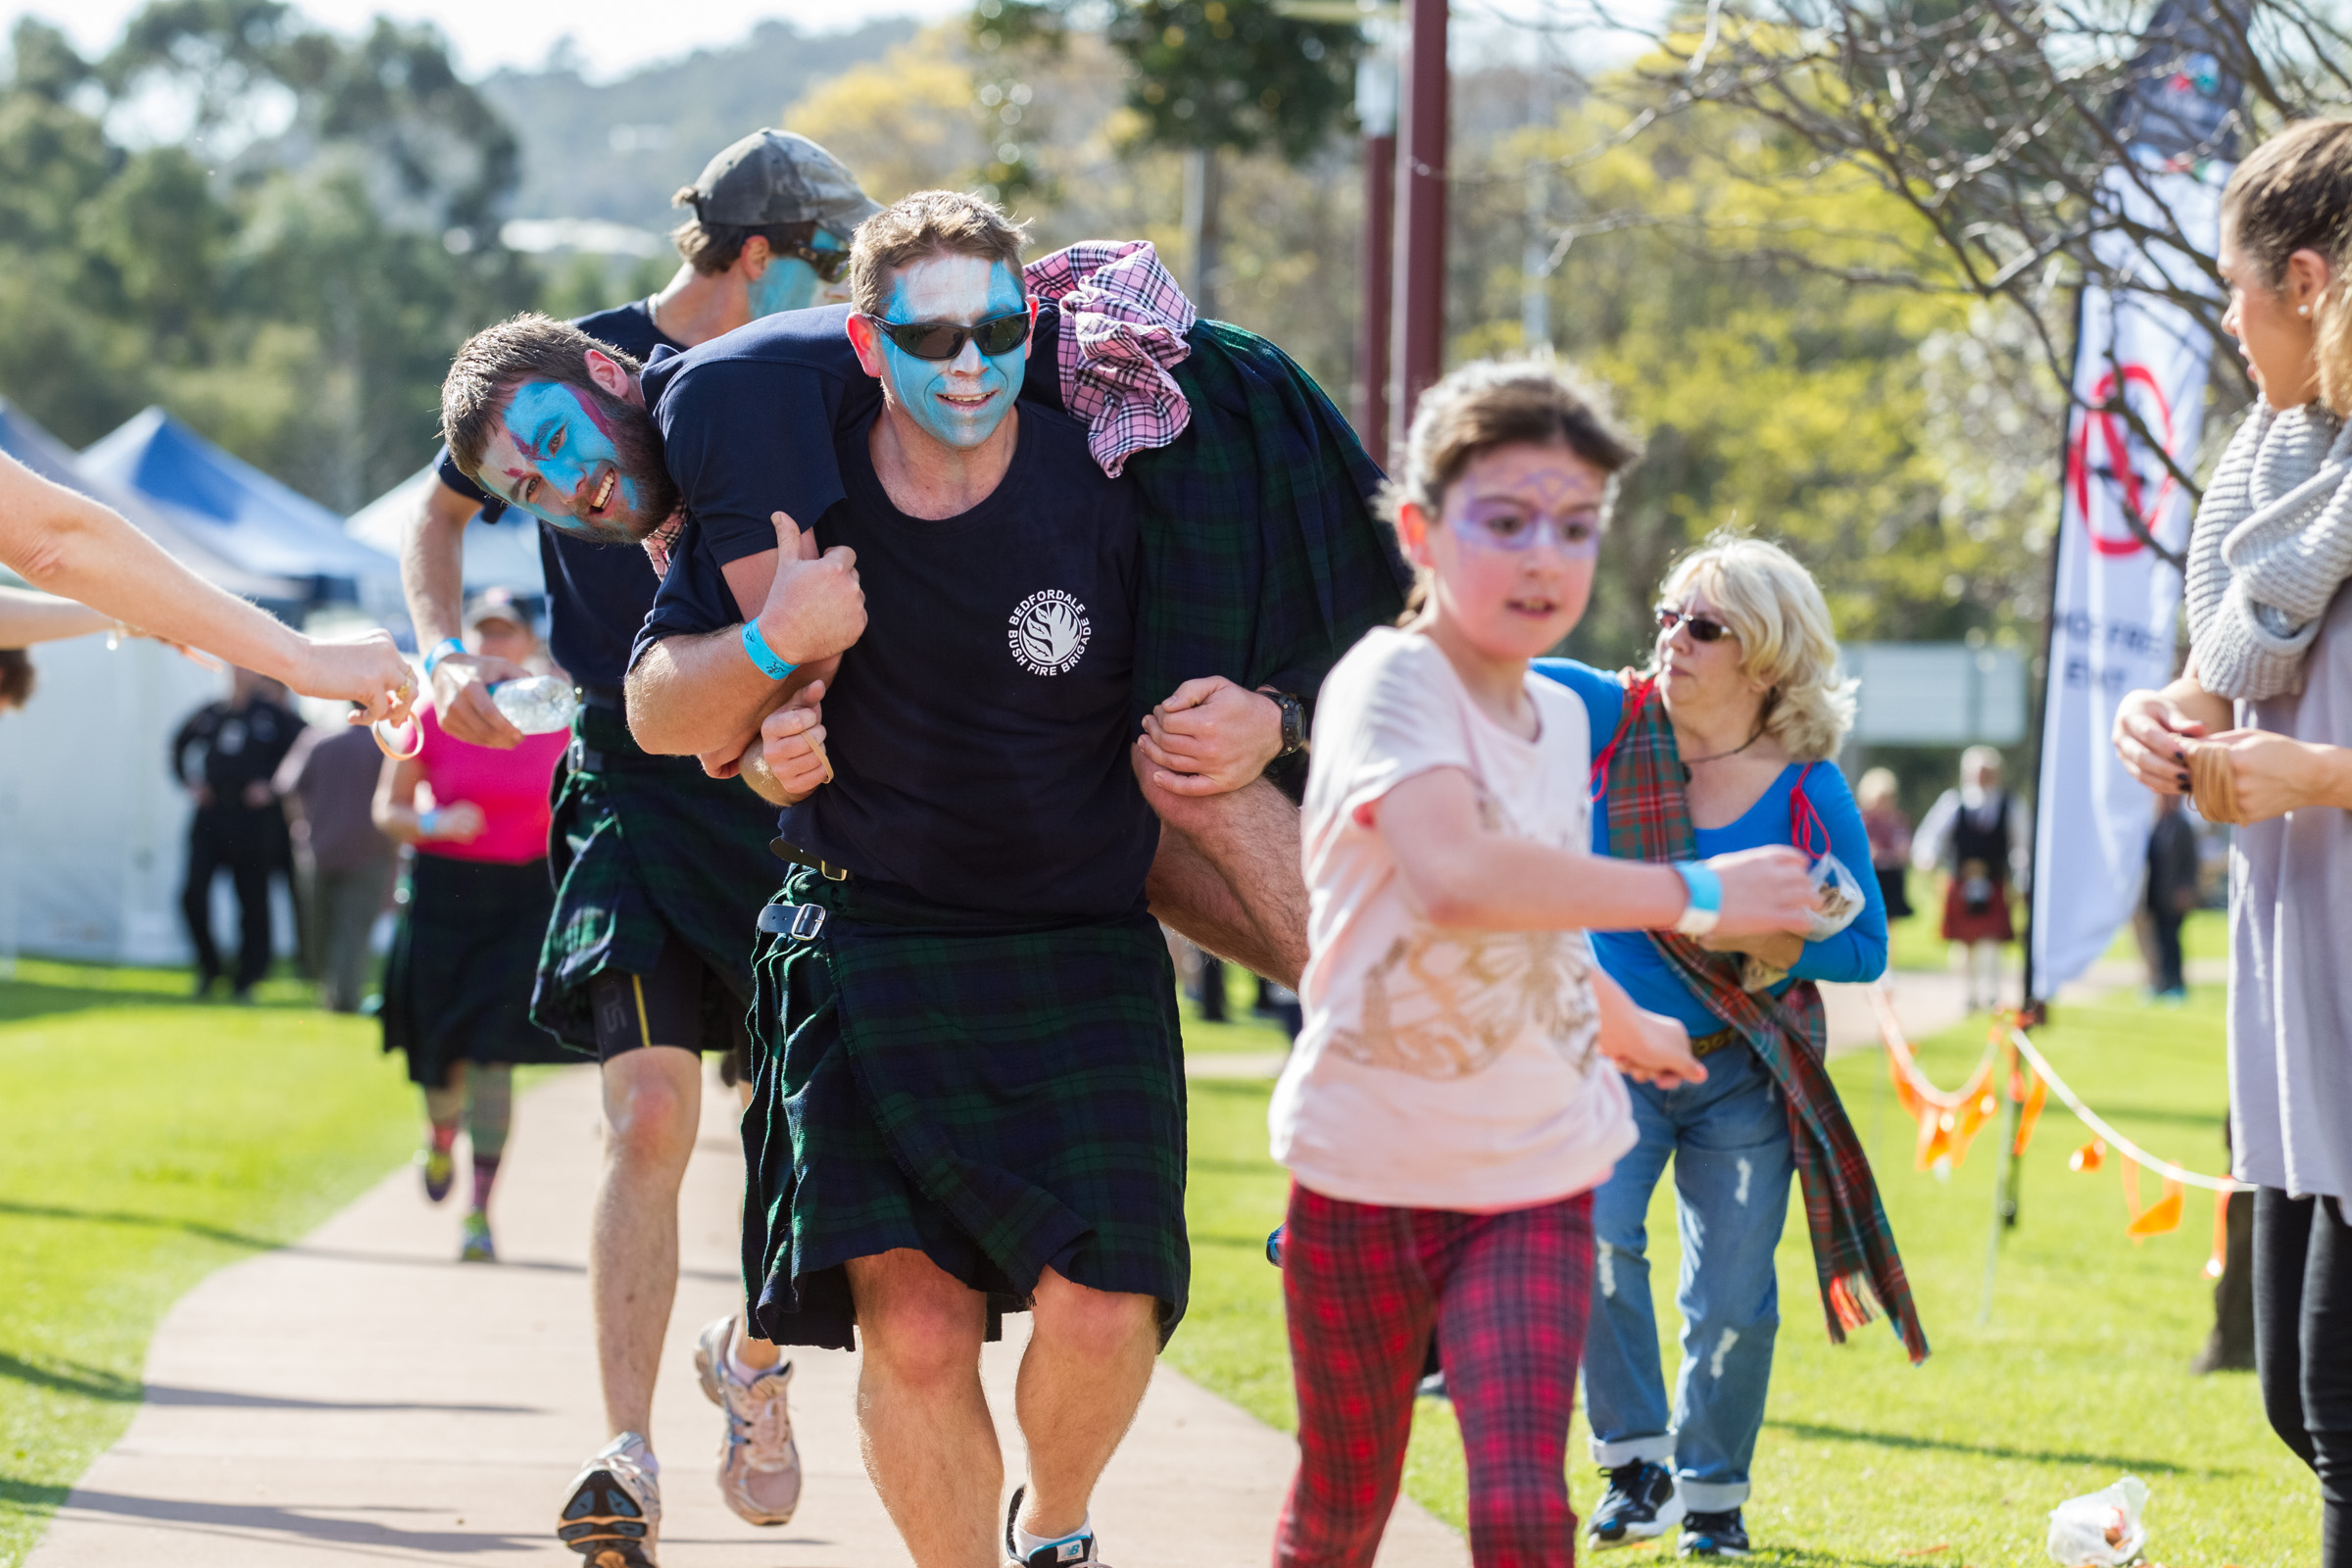 Perth-Kilt-Run-2014-med-res_69_Matt_Devlin_editorial-commercial-photographer-Perth